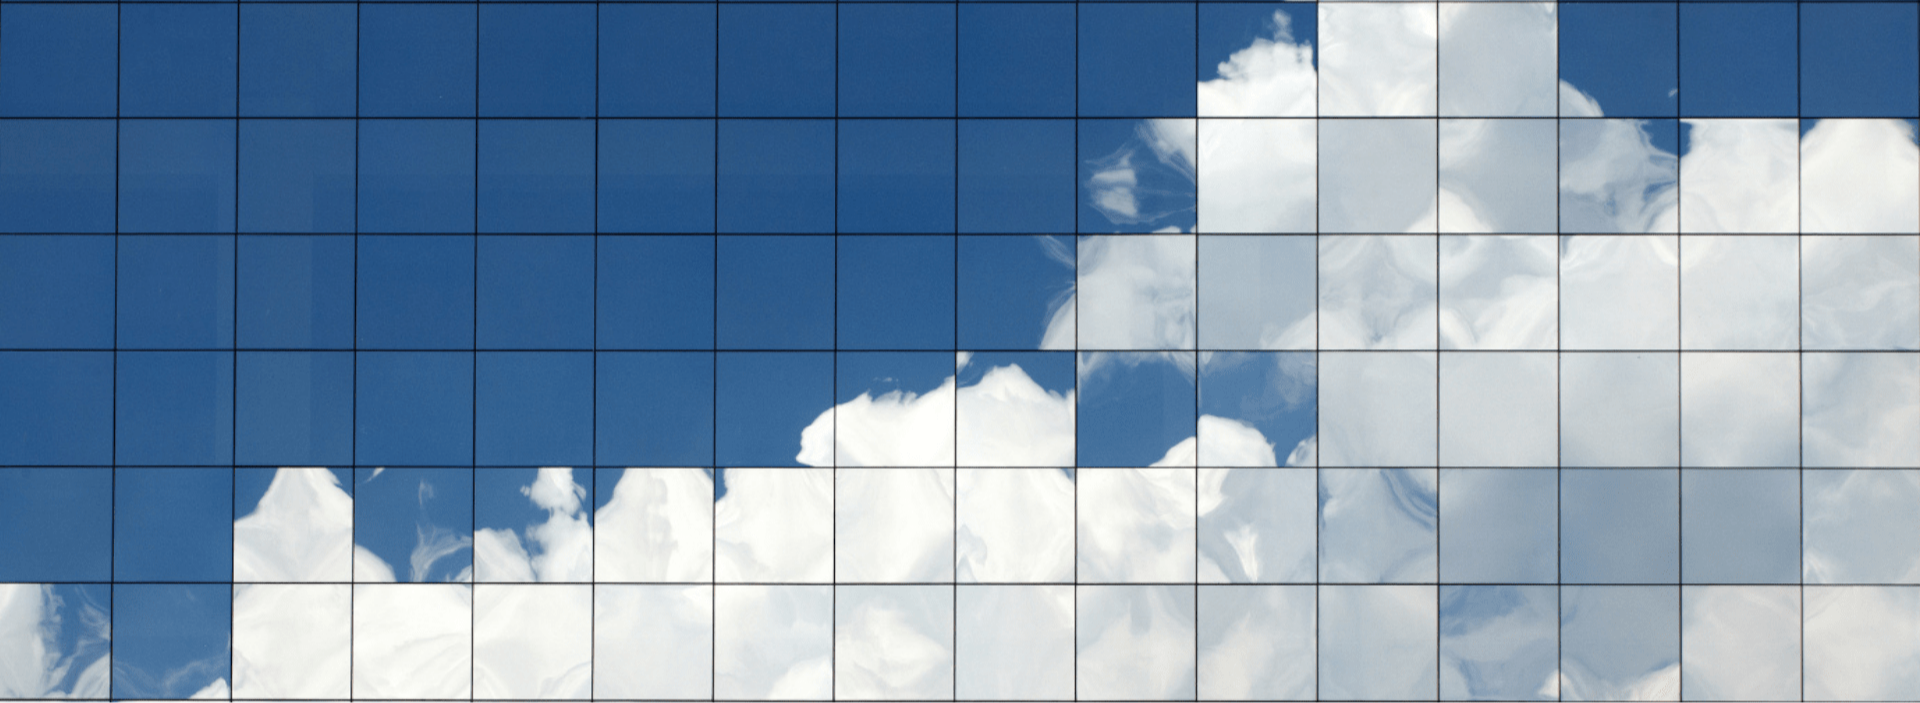 Cloud agnostic development: Pros and cons, tips and tools